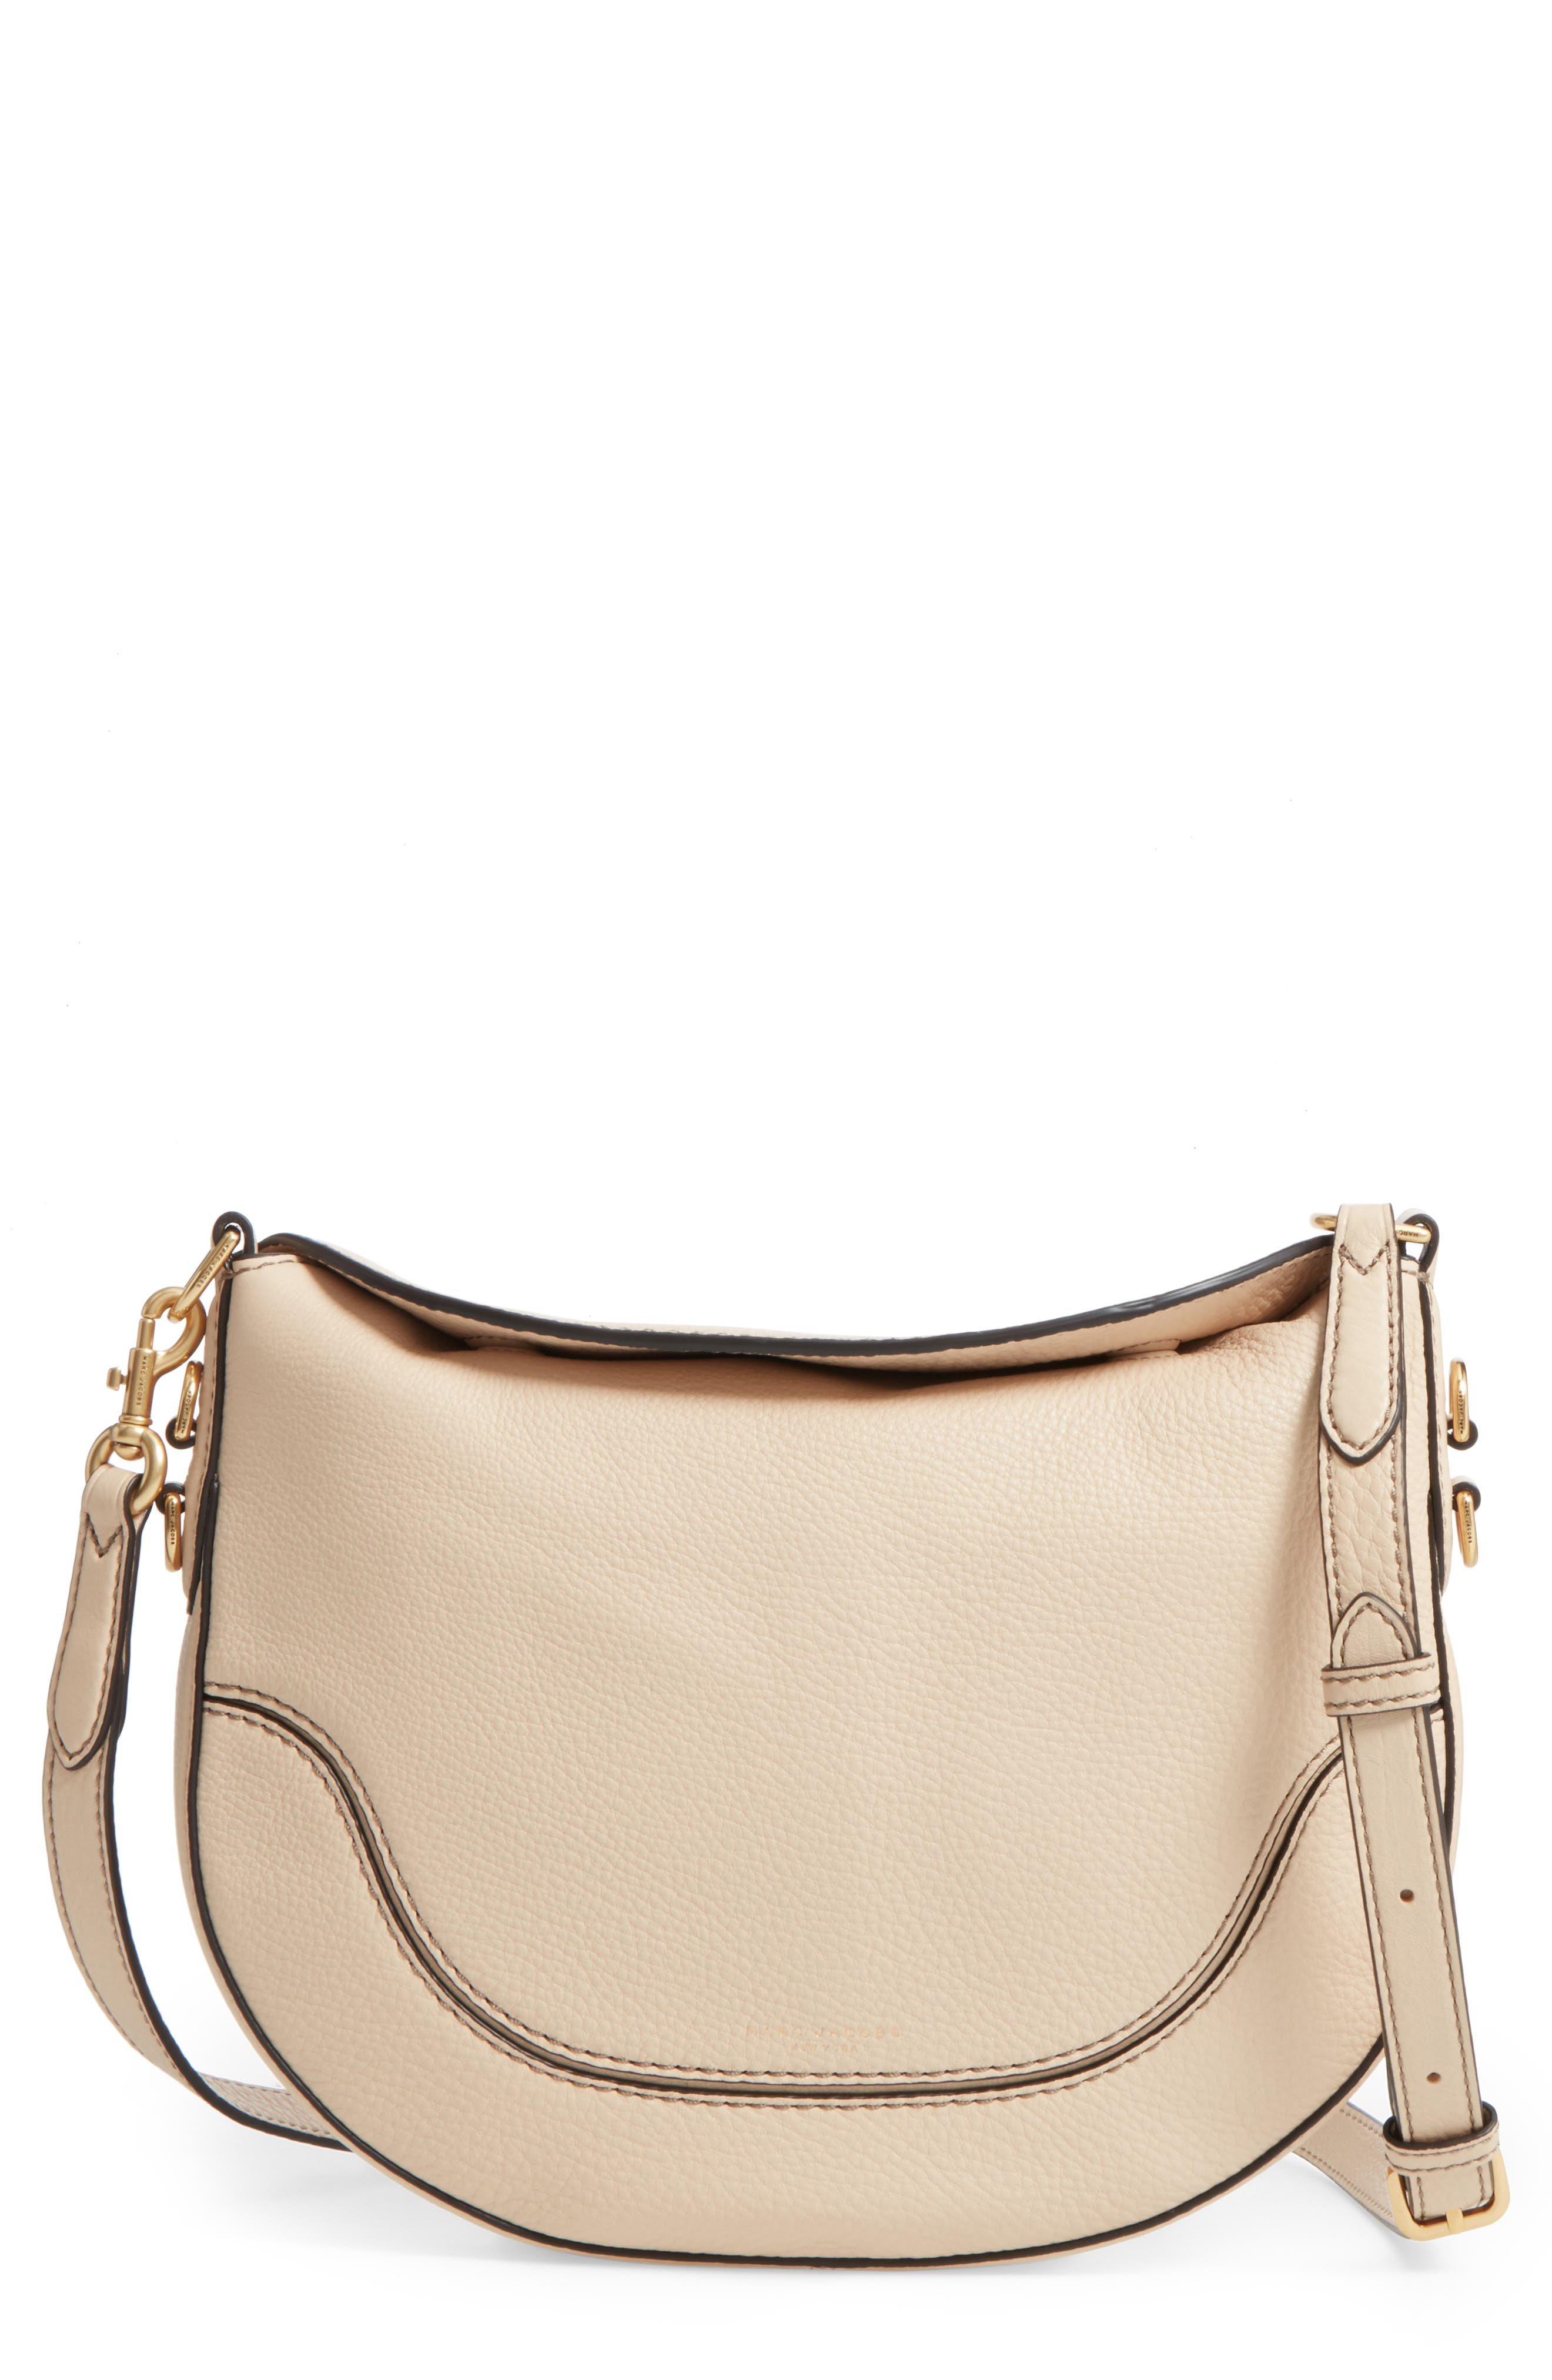 MARC JACOBS Small Leather Shoulder Bag